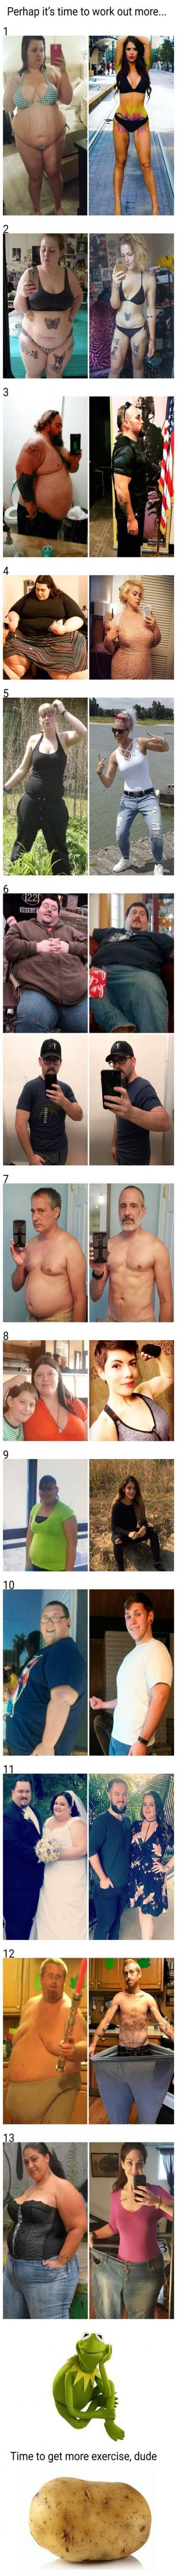 Fitness motivation before and after dreams 66+ Best Ideas #motivation #fitness